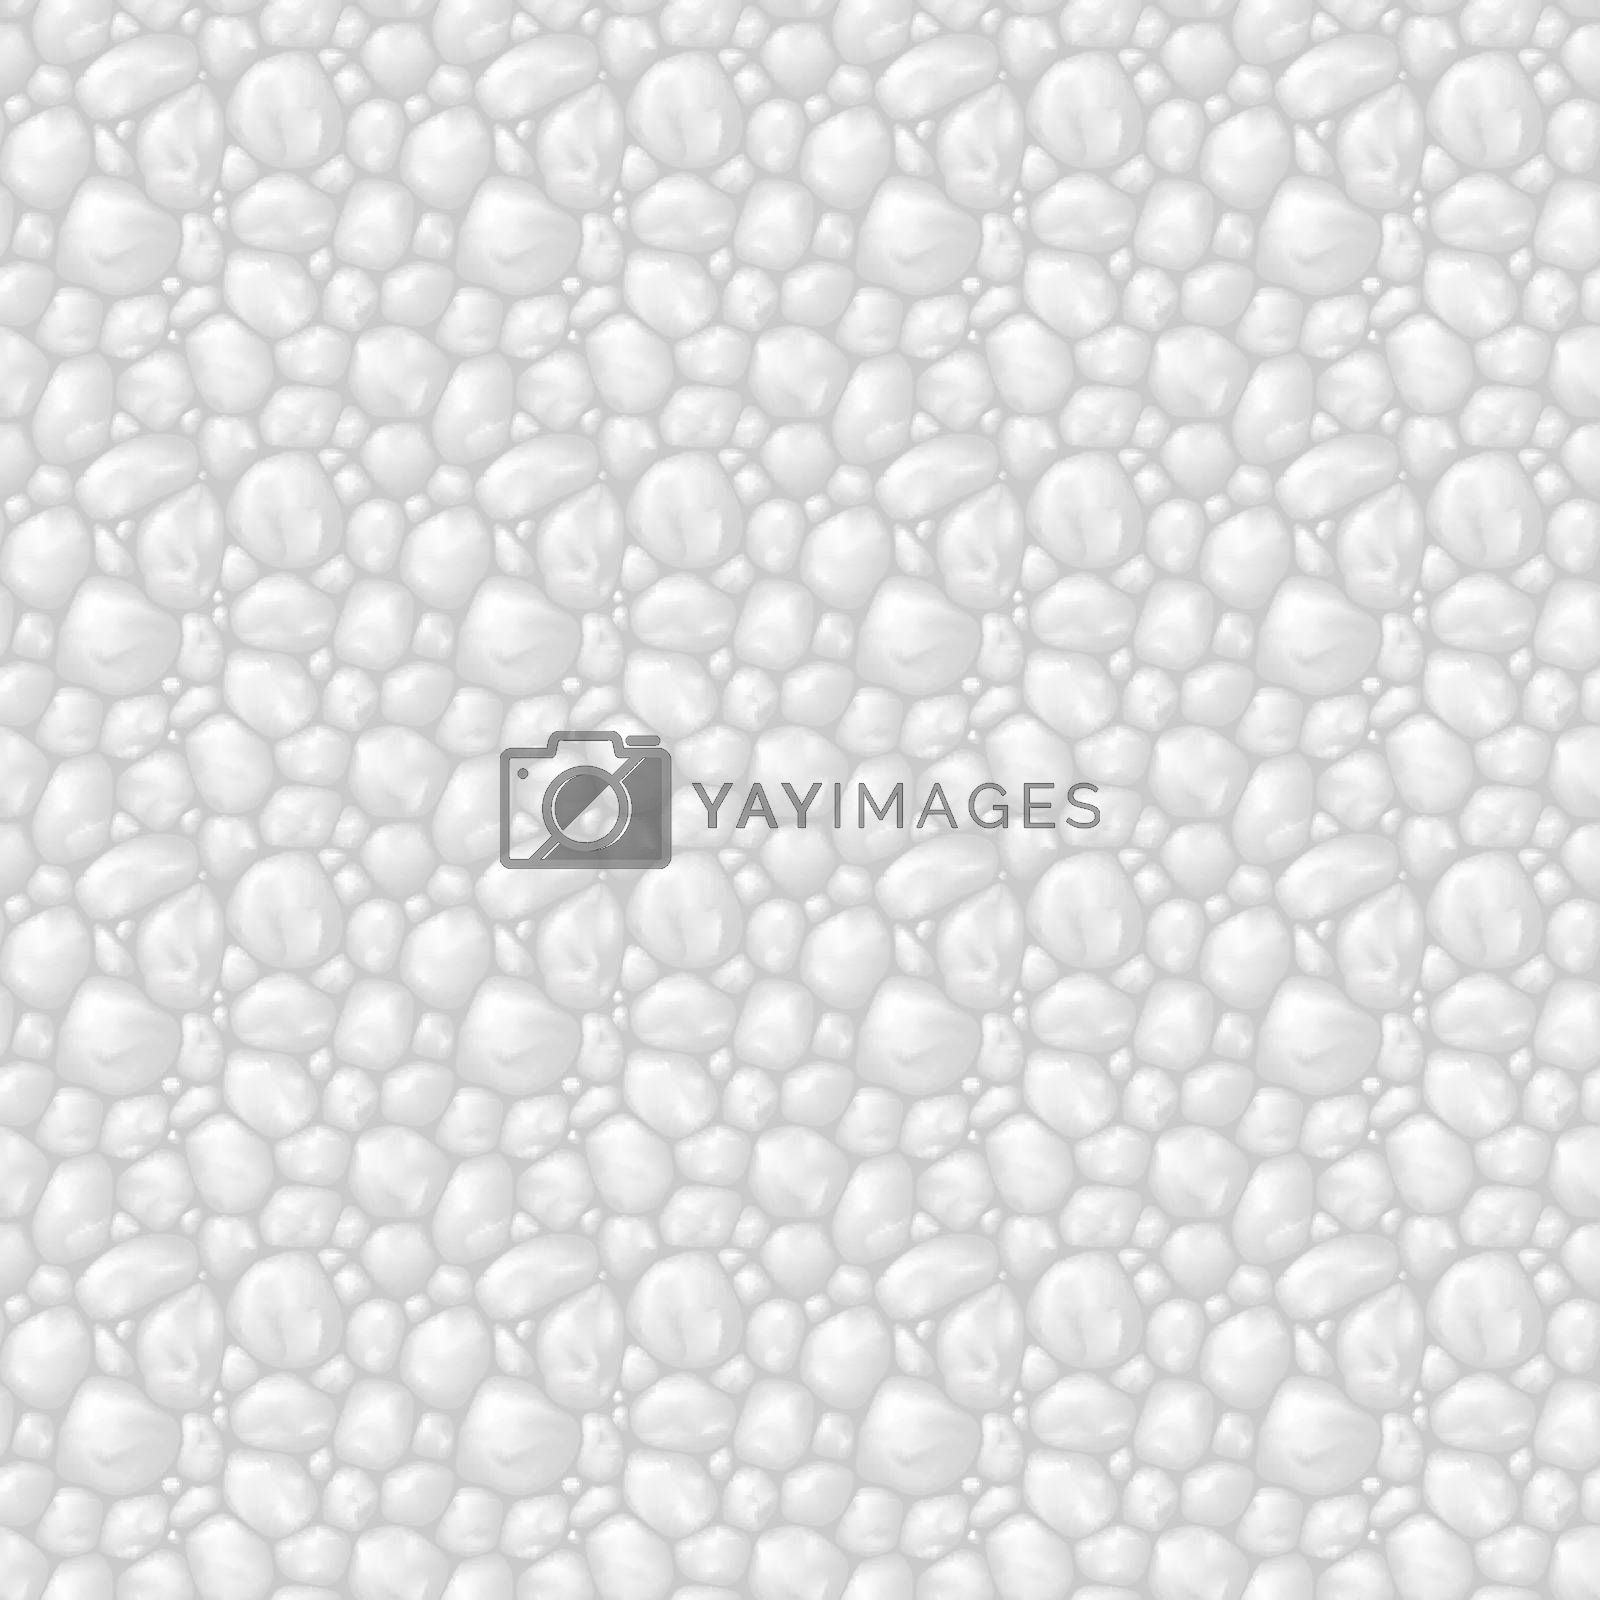 Seamless texture gray stone for game user interface or other design idea